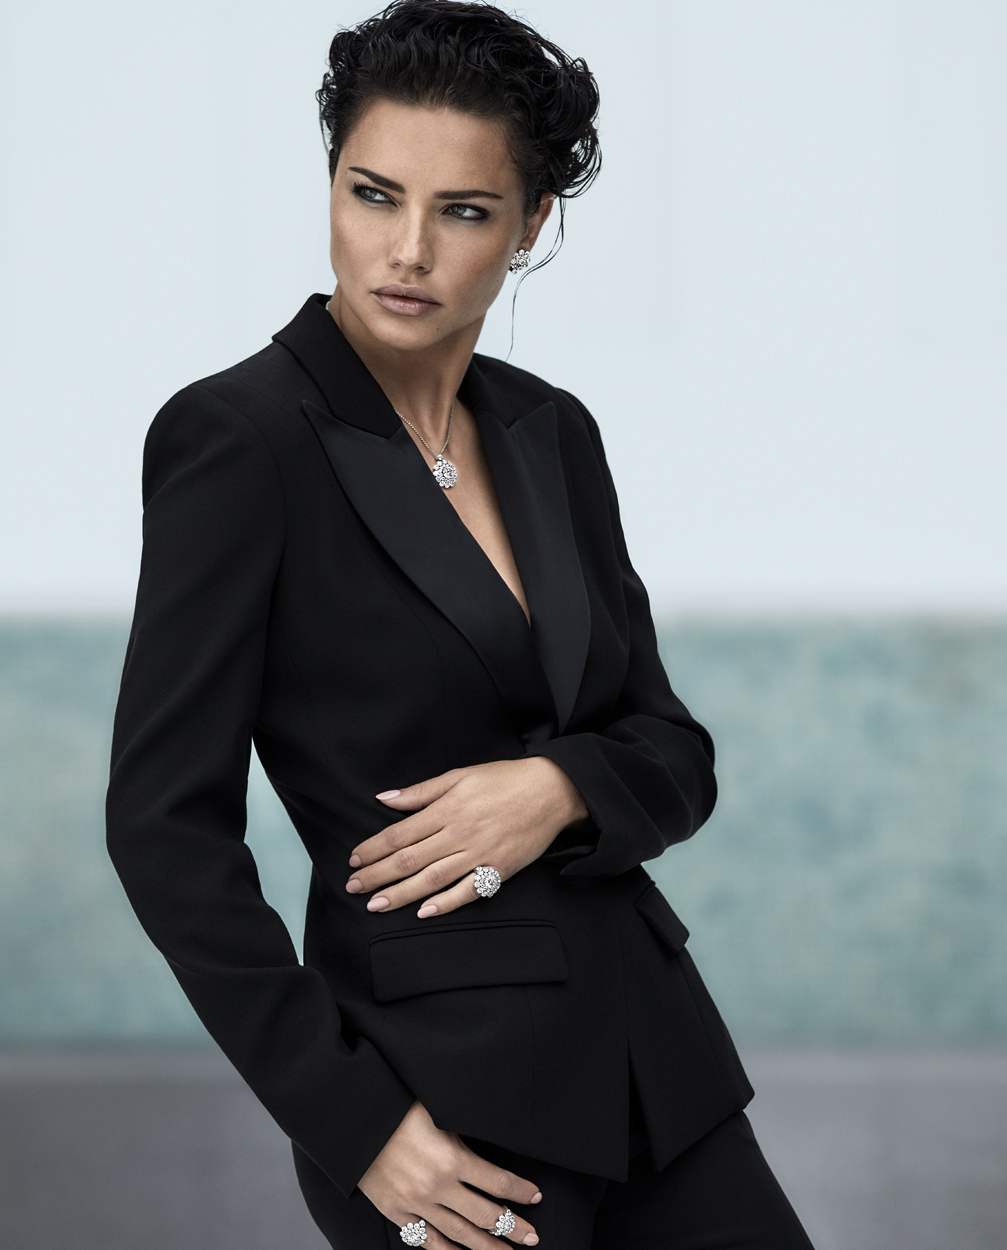 Fashion Photographer Michael Schwartz: model Adriana Lima for Chopard advertising